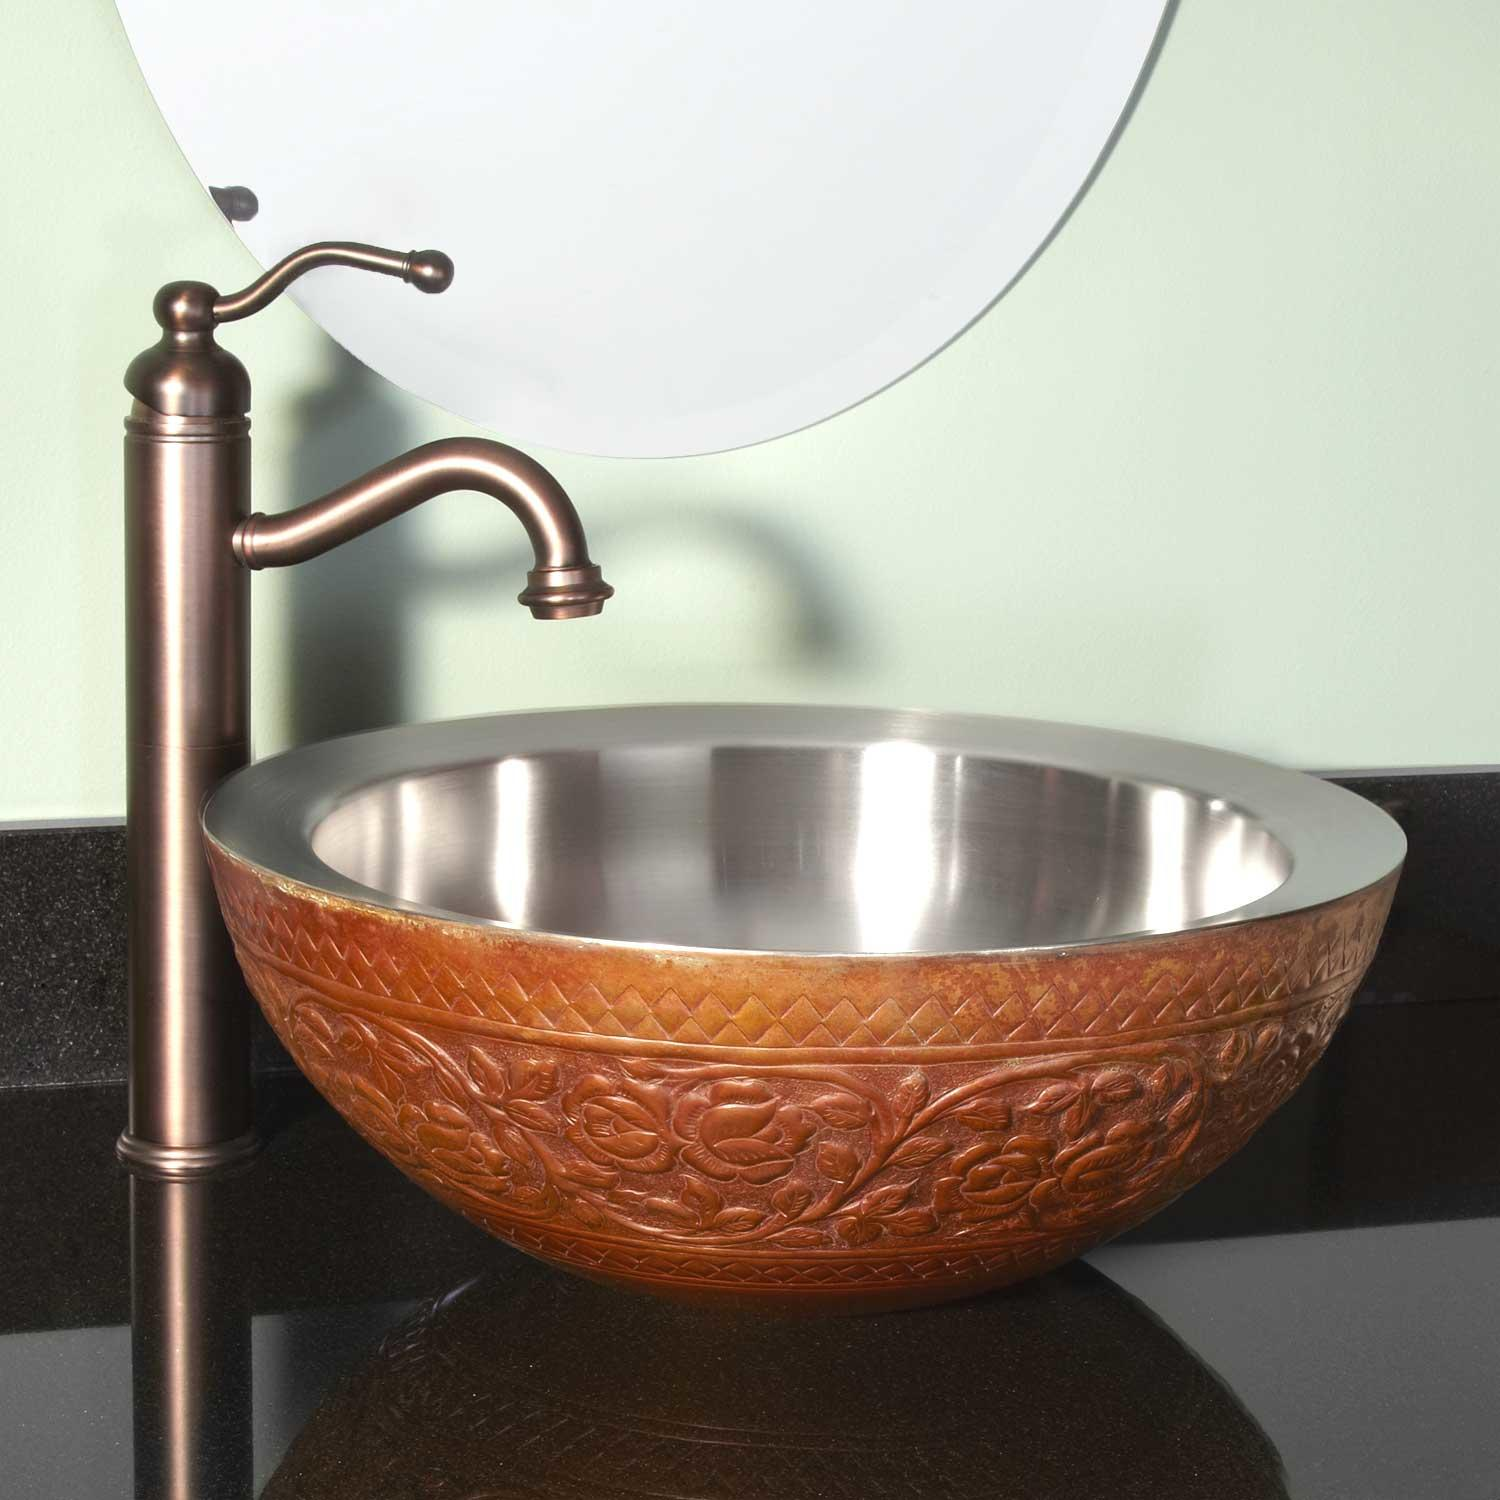 Top mirabelle sinks with glistening-garden-double-wall-copper-vessel-sink for bathroom with mirabelle undermount sink